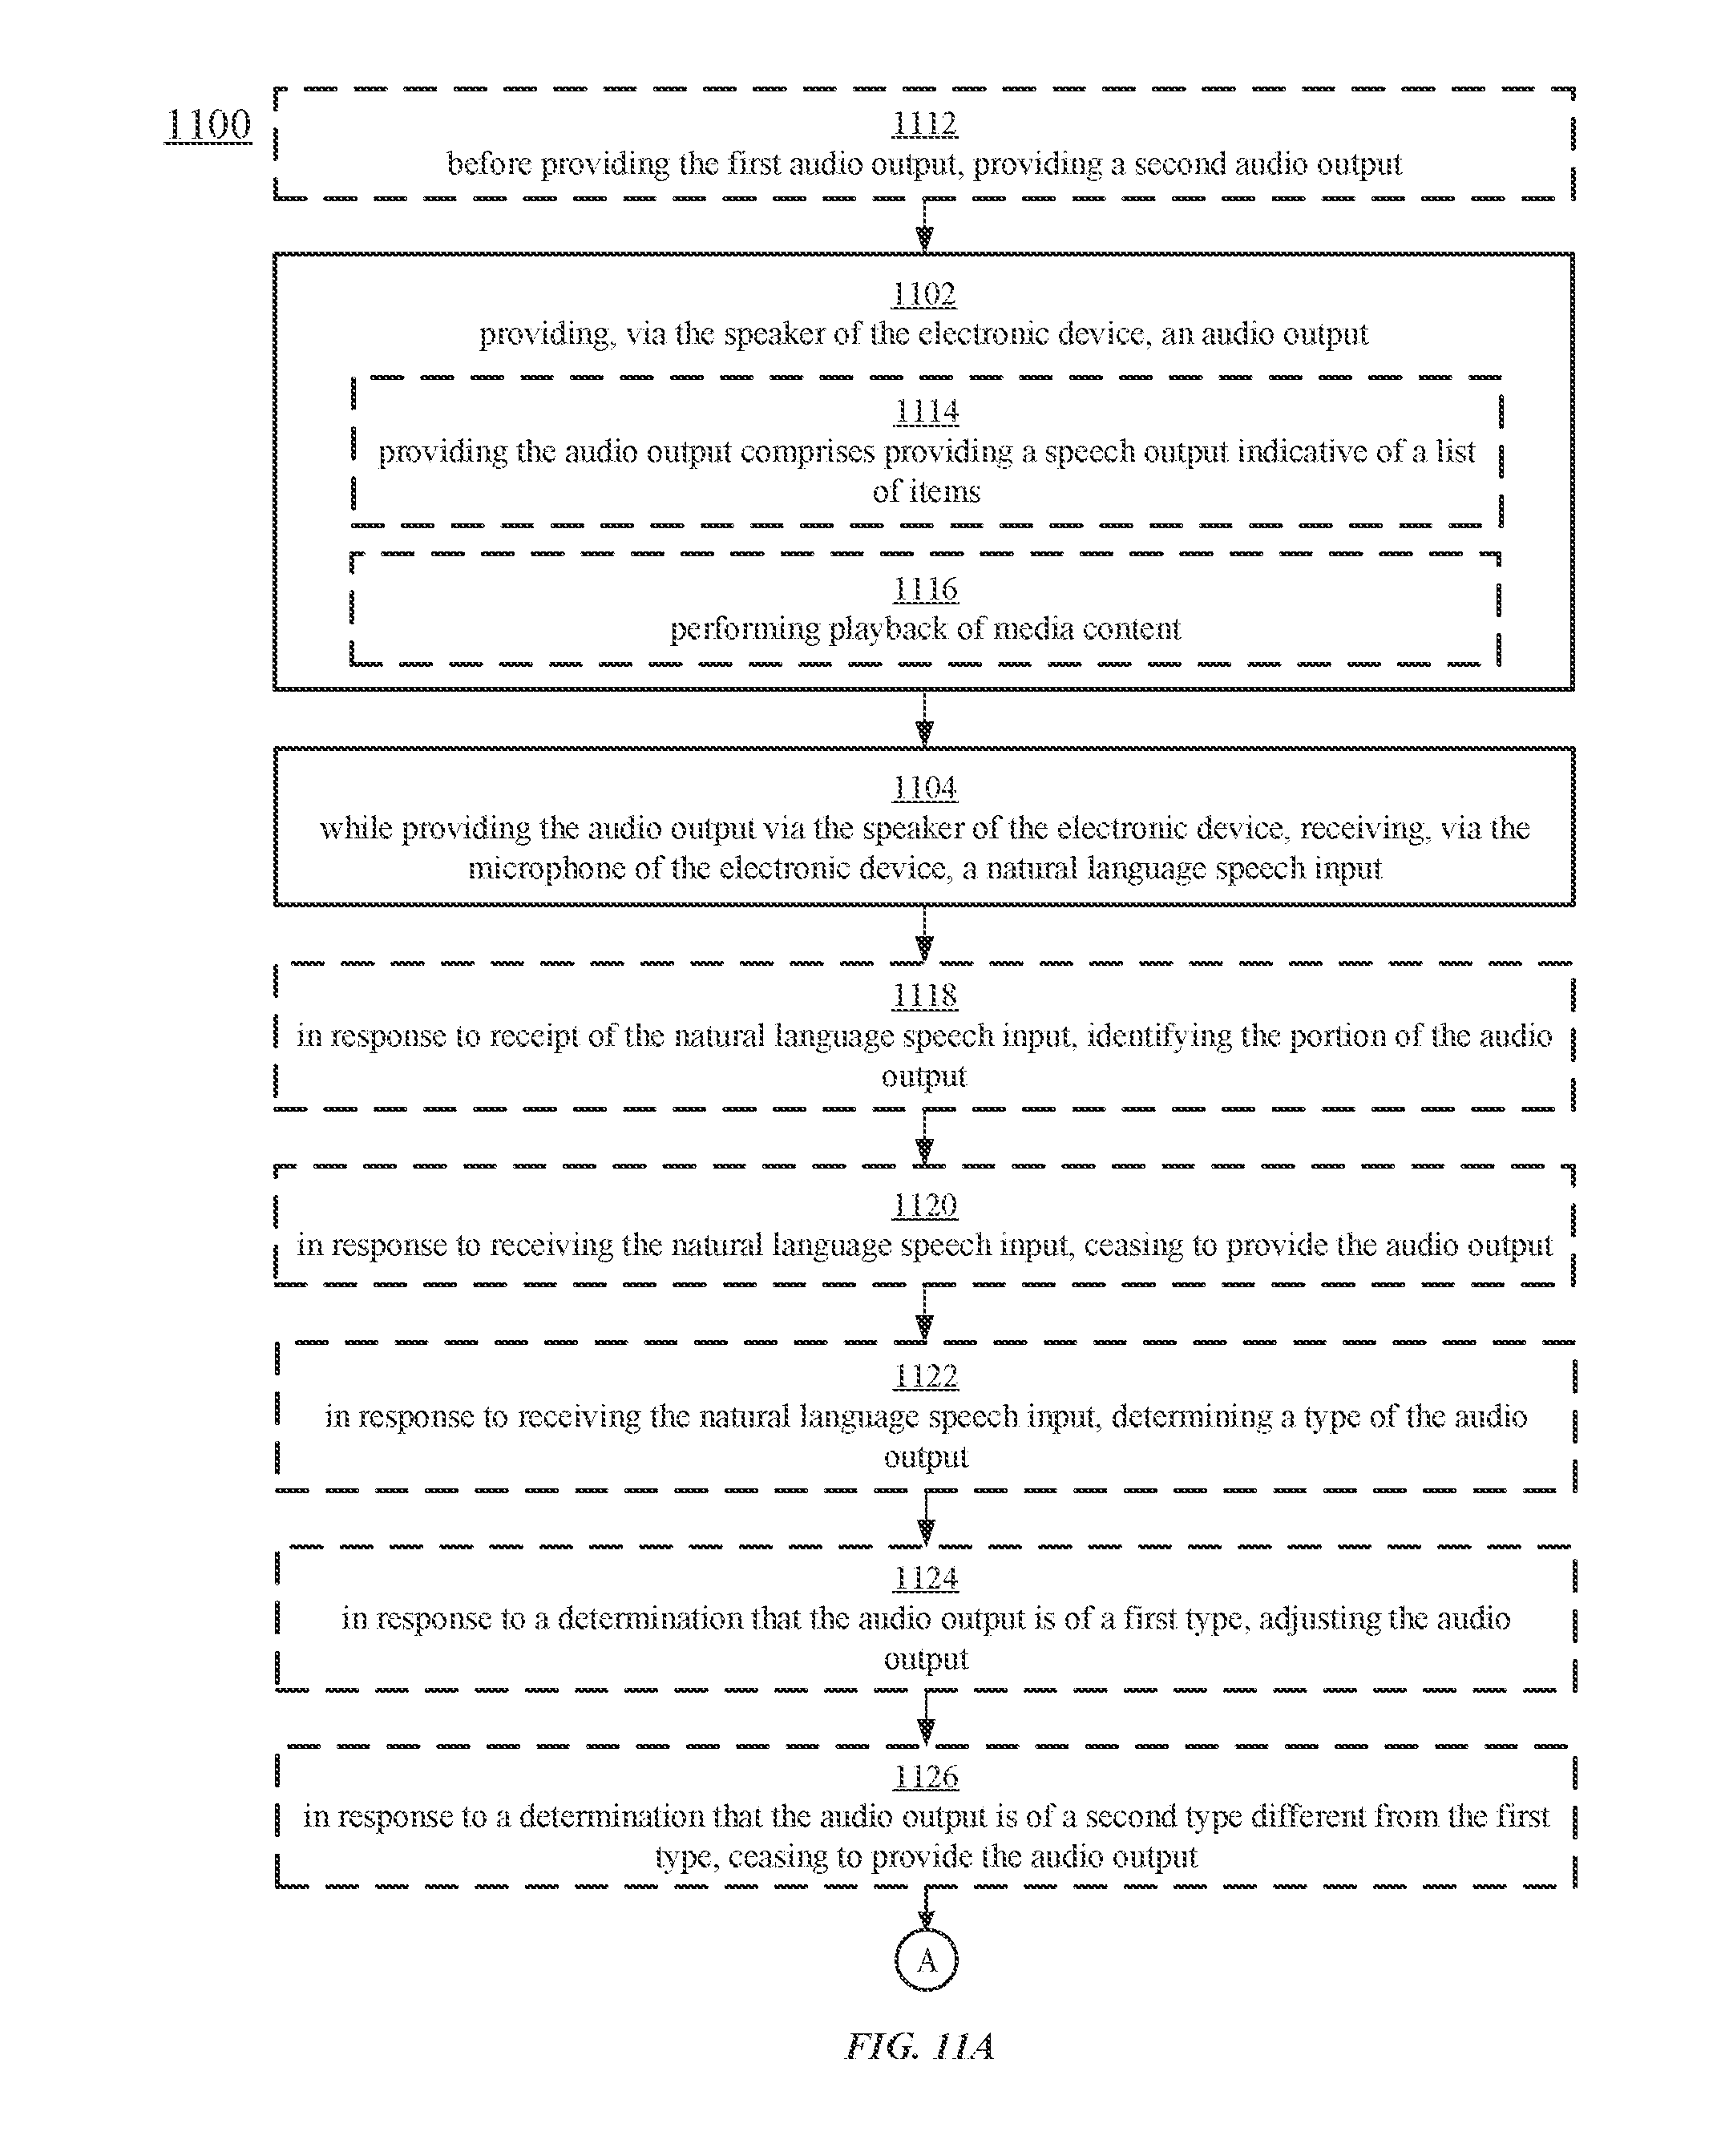 US20180090143A1 - Intelligent automated assistant - Google Patents